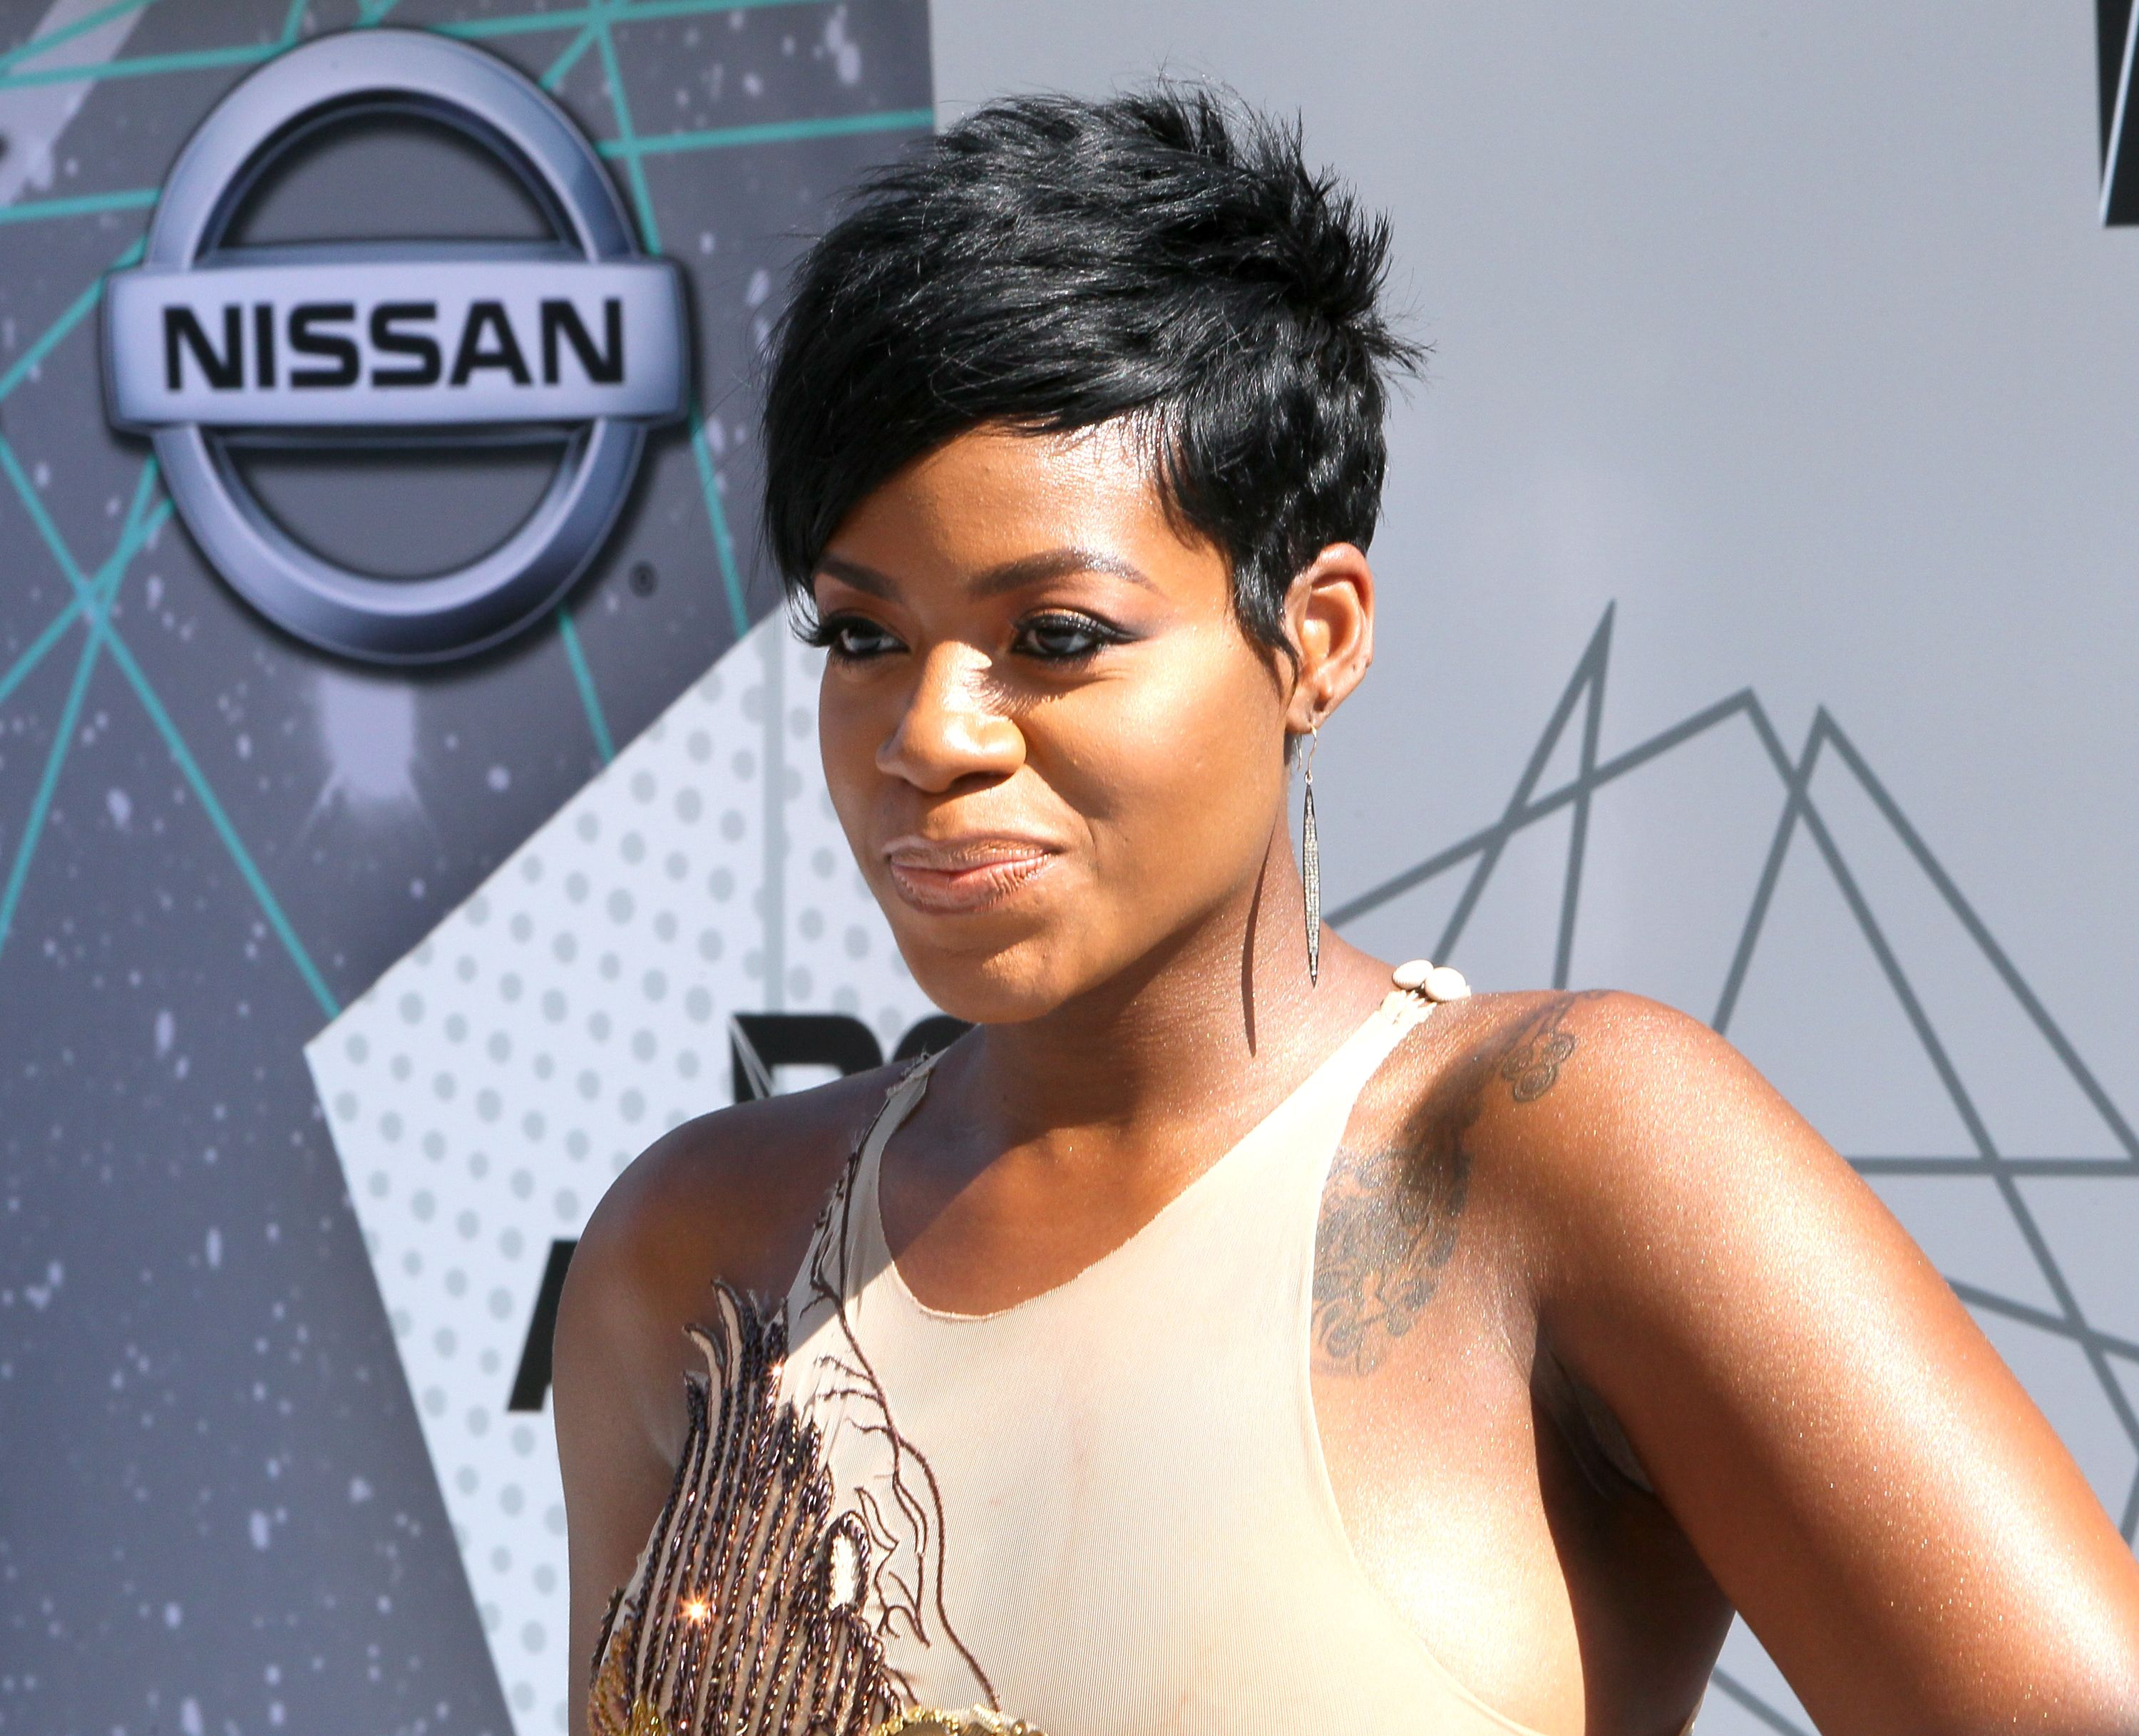 Singer Fantasia Barrino attends the 2016 BET Awards at Microsoft Theater on June 26, 2016 | Photo: Getty Images